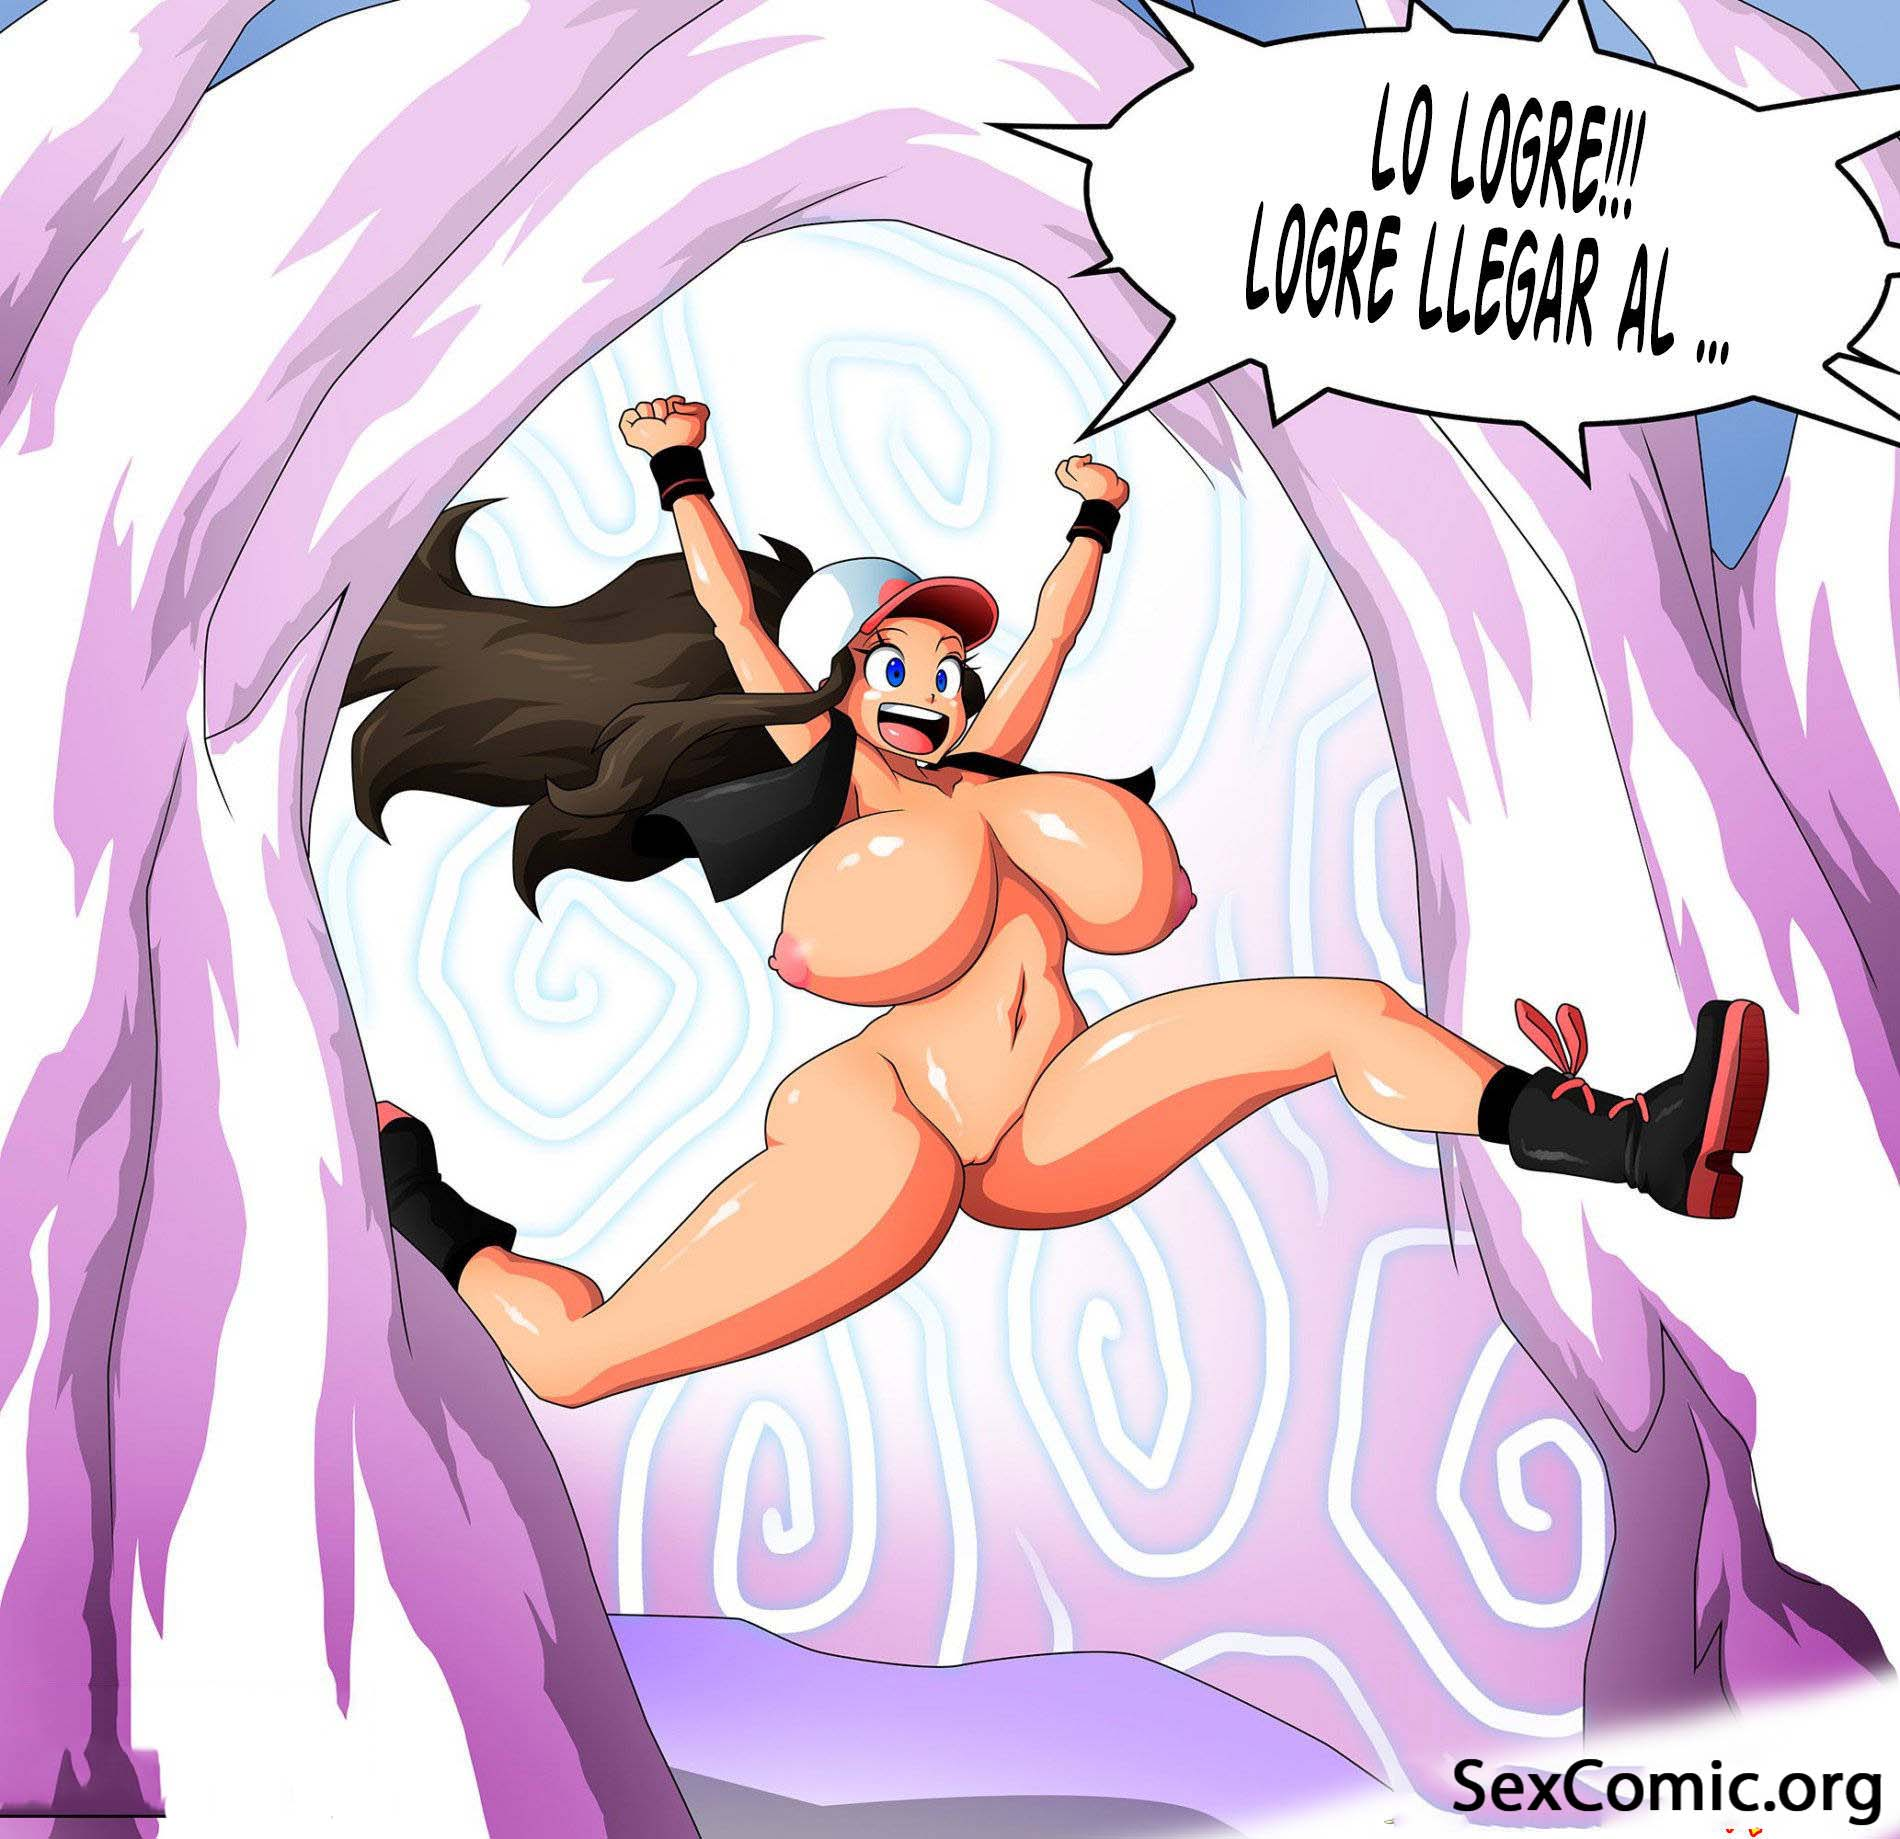 Mystic Pokemon comic porno - pokemon-porno-comics-sexuales-pokemon-go-sexo (25)